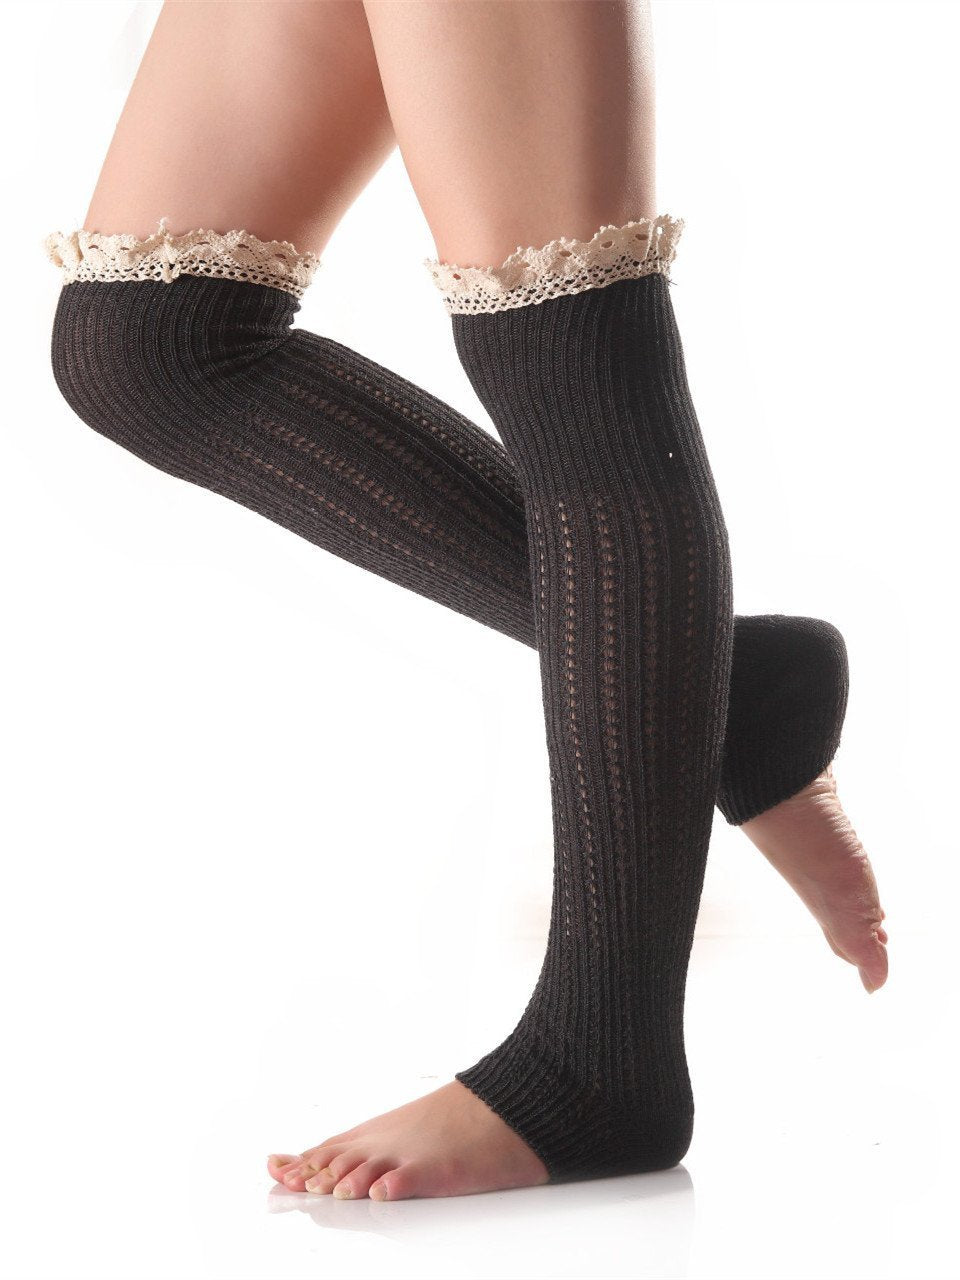 Knitting Lace Solid Color Stocking DARK GRAY